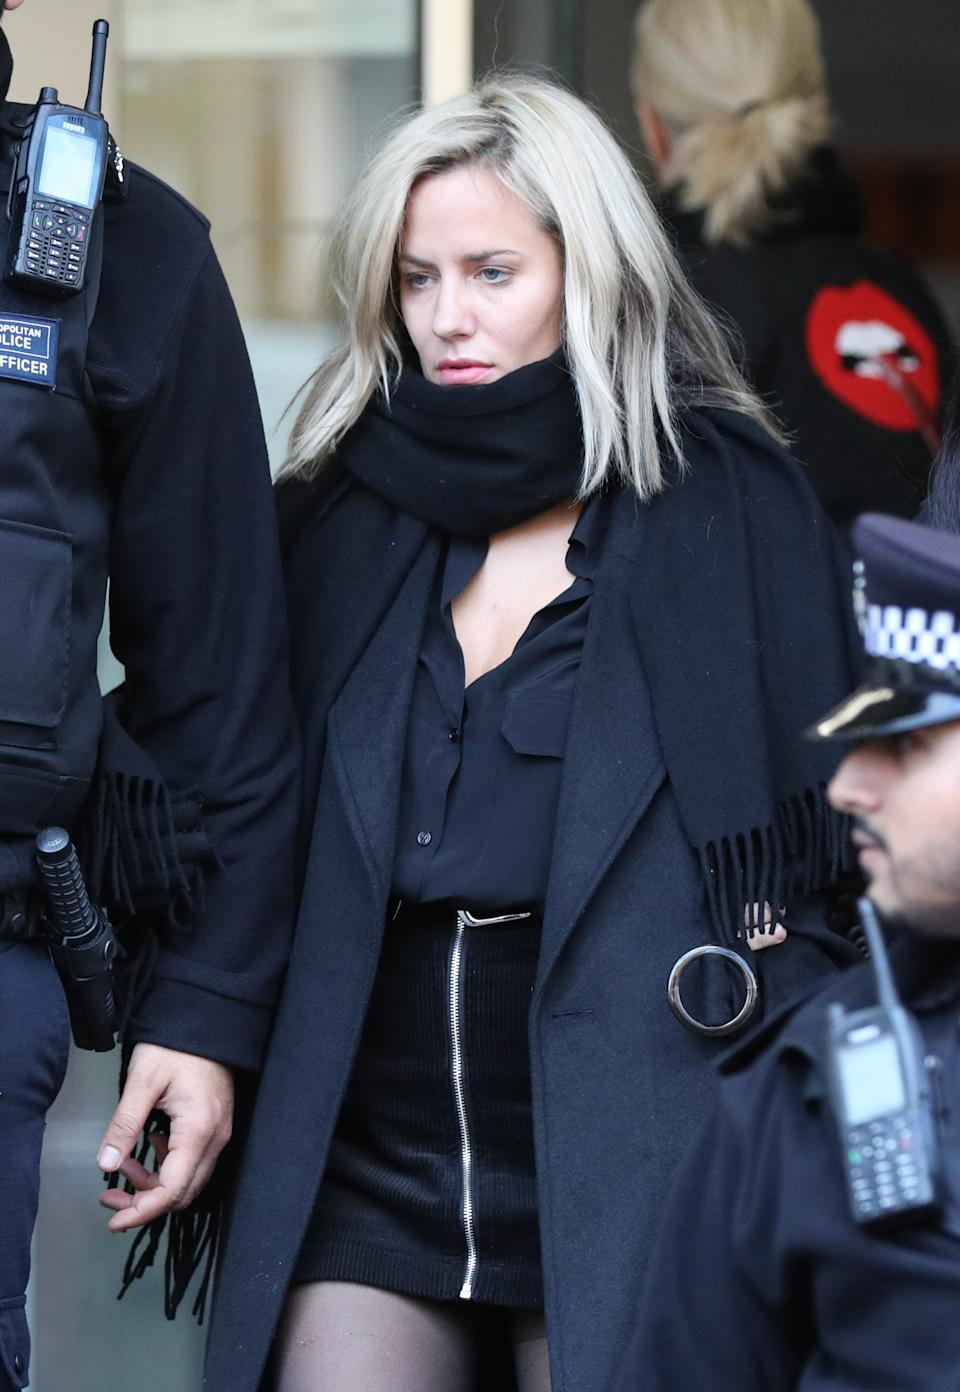 Caroline Flack leaving Highbury Corner Magistrates' Court after she had pleaded not guilty to assaulting boyfriend Lewis Burton last year. (PA)